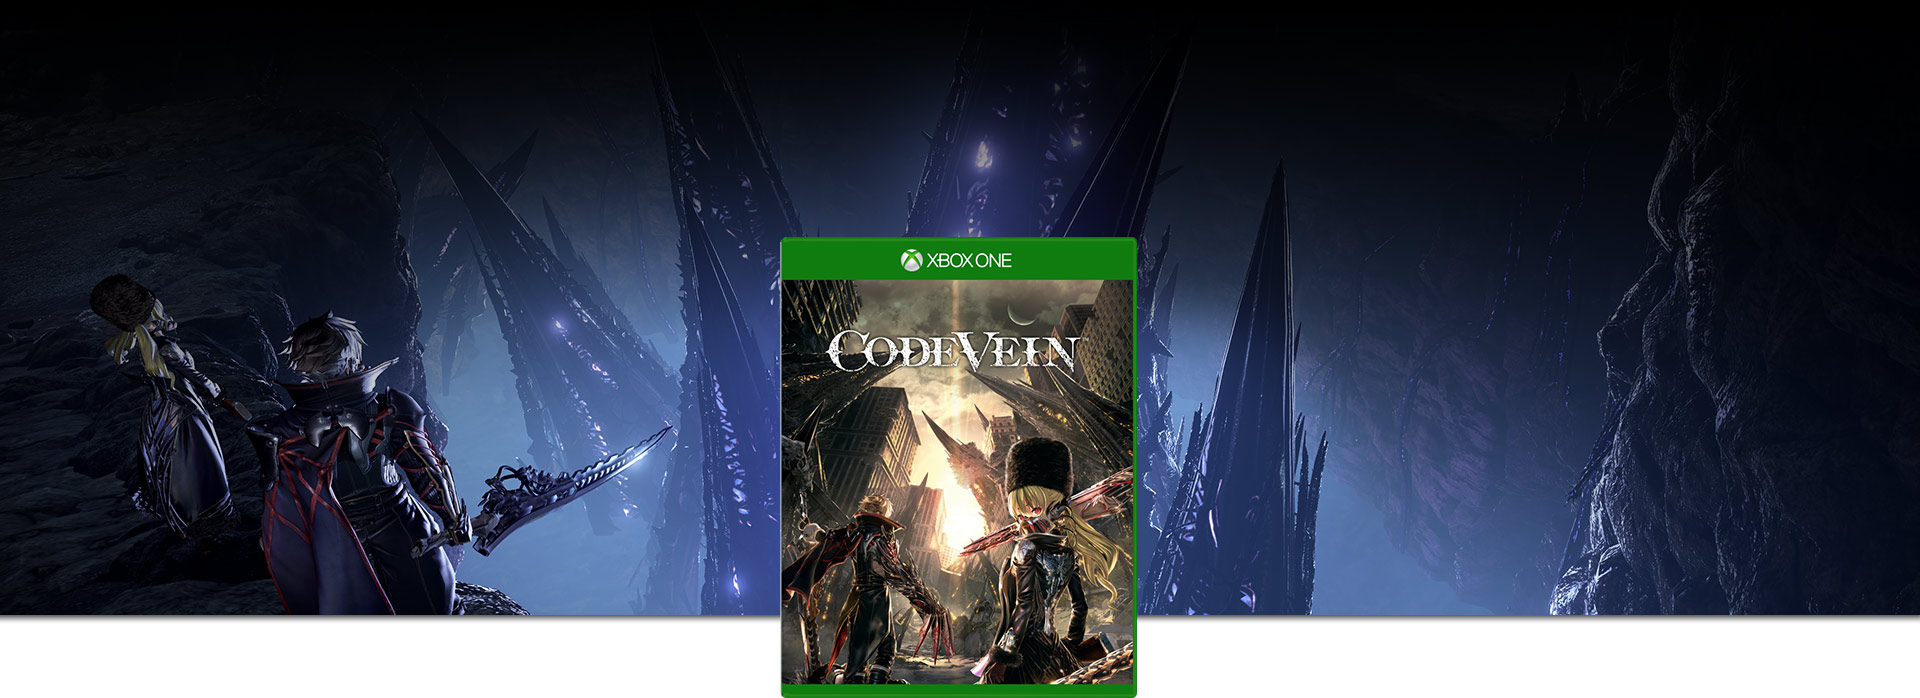 Code vein boxshot, Characters looking at thorns of judgment from cliff